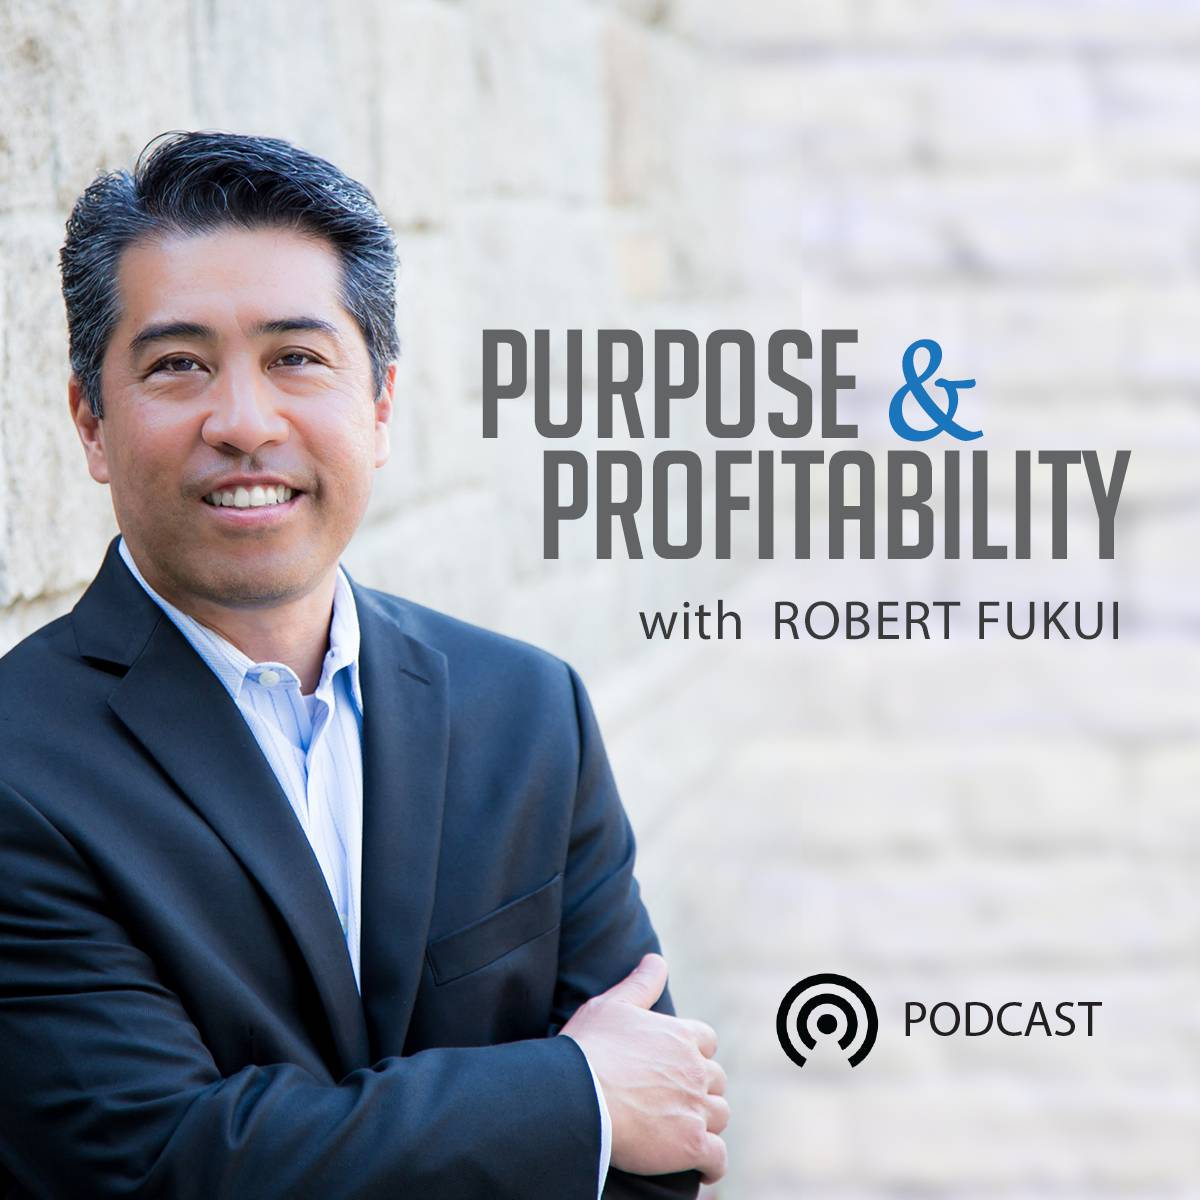 Purpose & Profitability Podcast